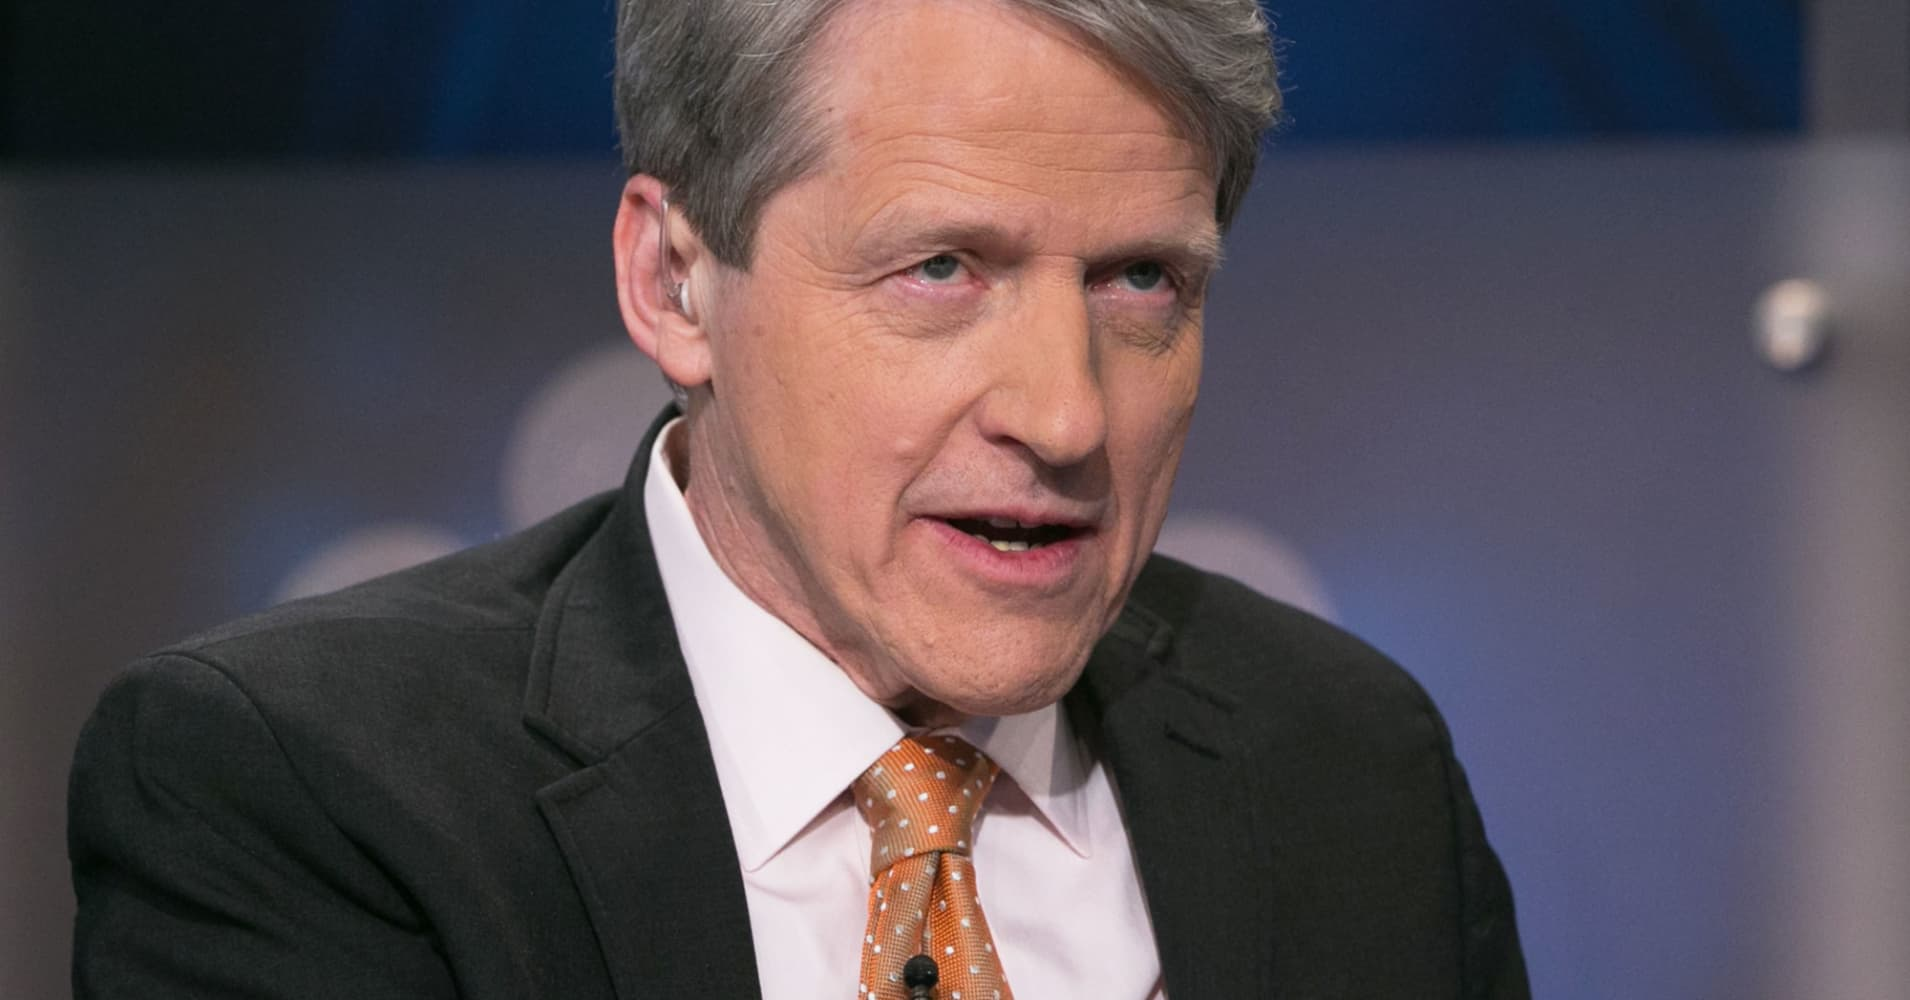 A solid earnings season won't be enough to avert another correction, economist Robert Shiller says